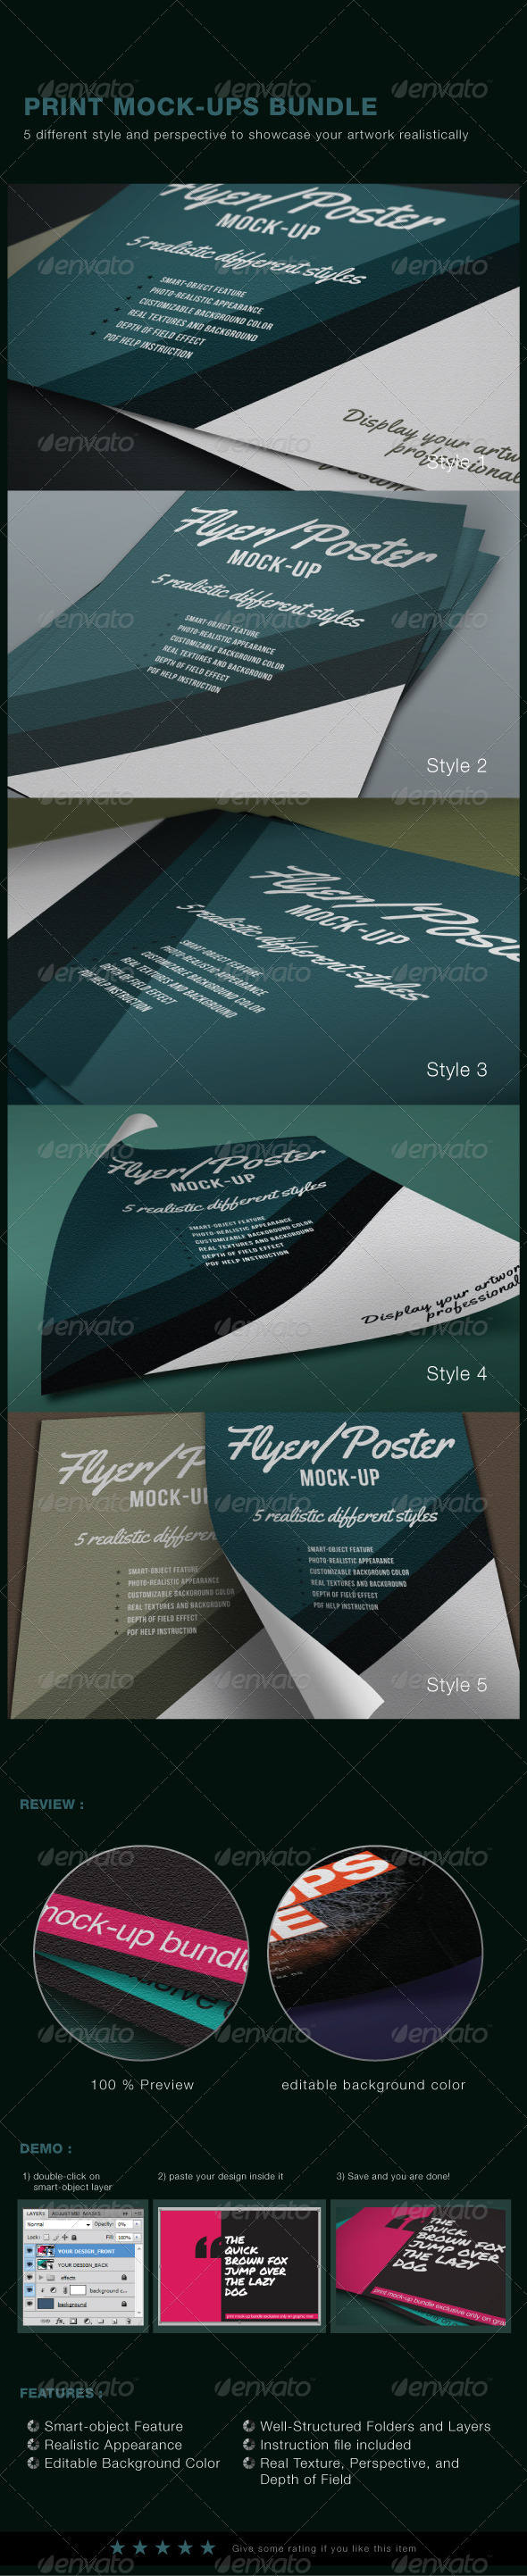 Graphic River Print Mock-Ups Set Graphics -  Product Mock-Ups  Print 1526007